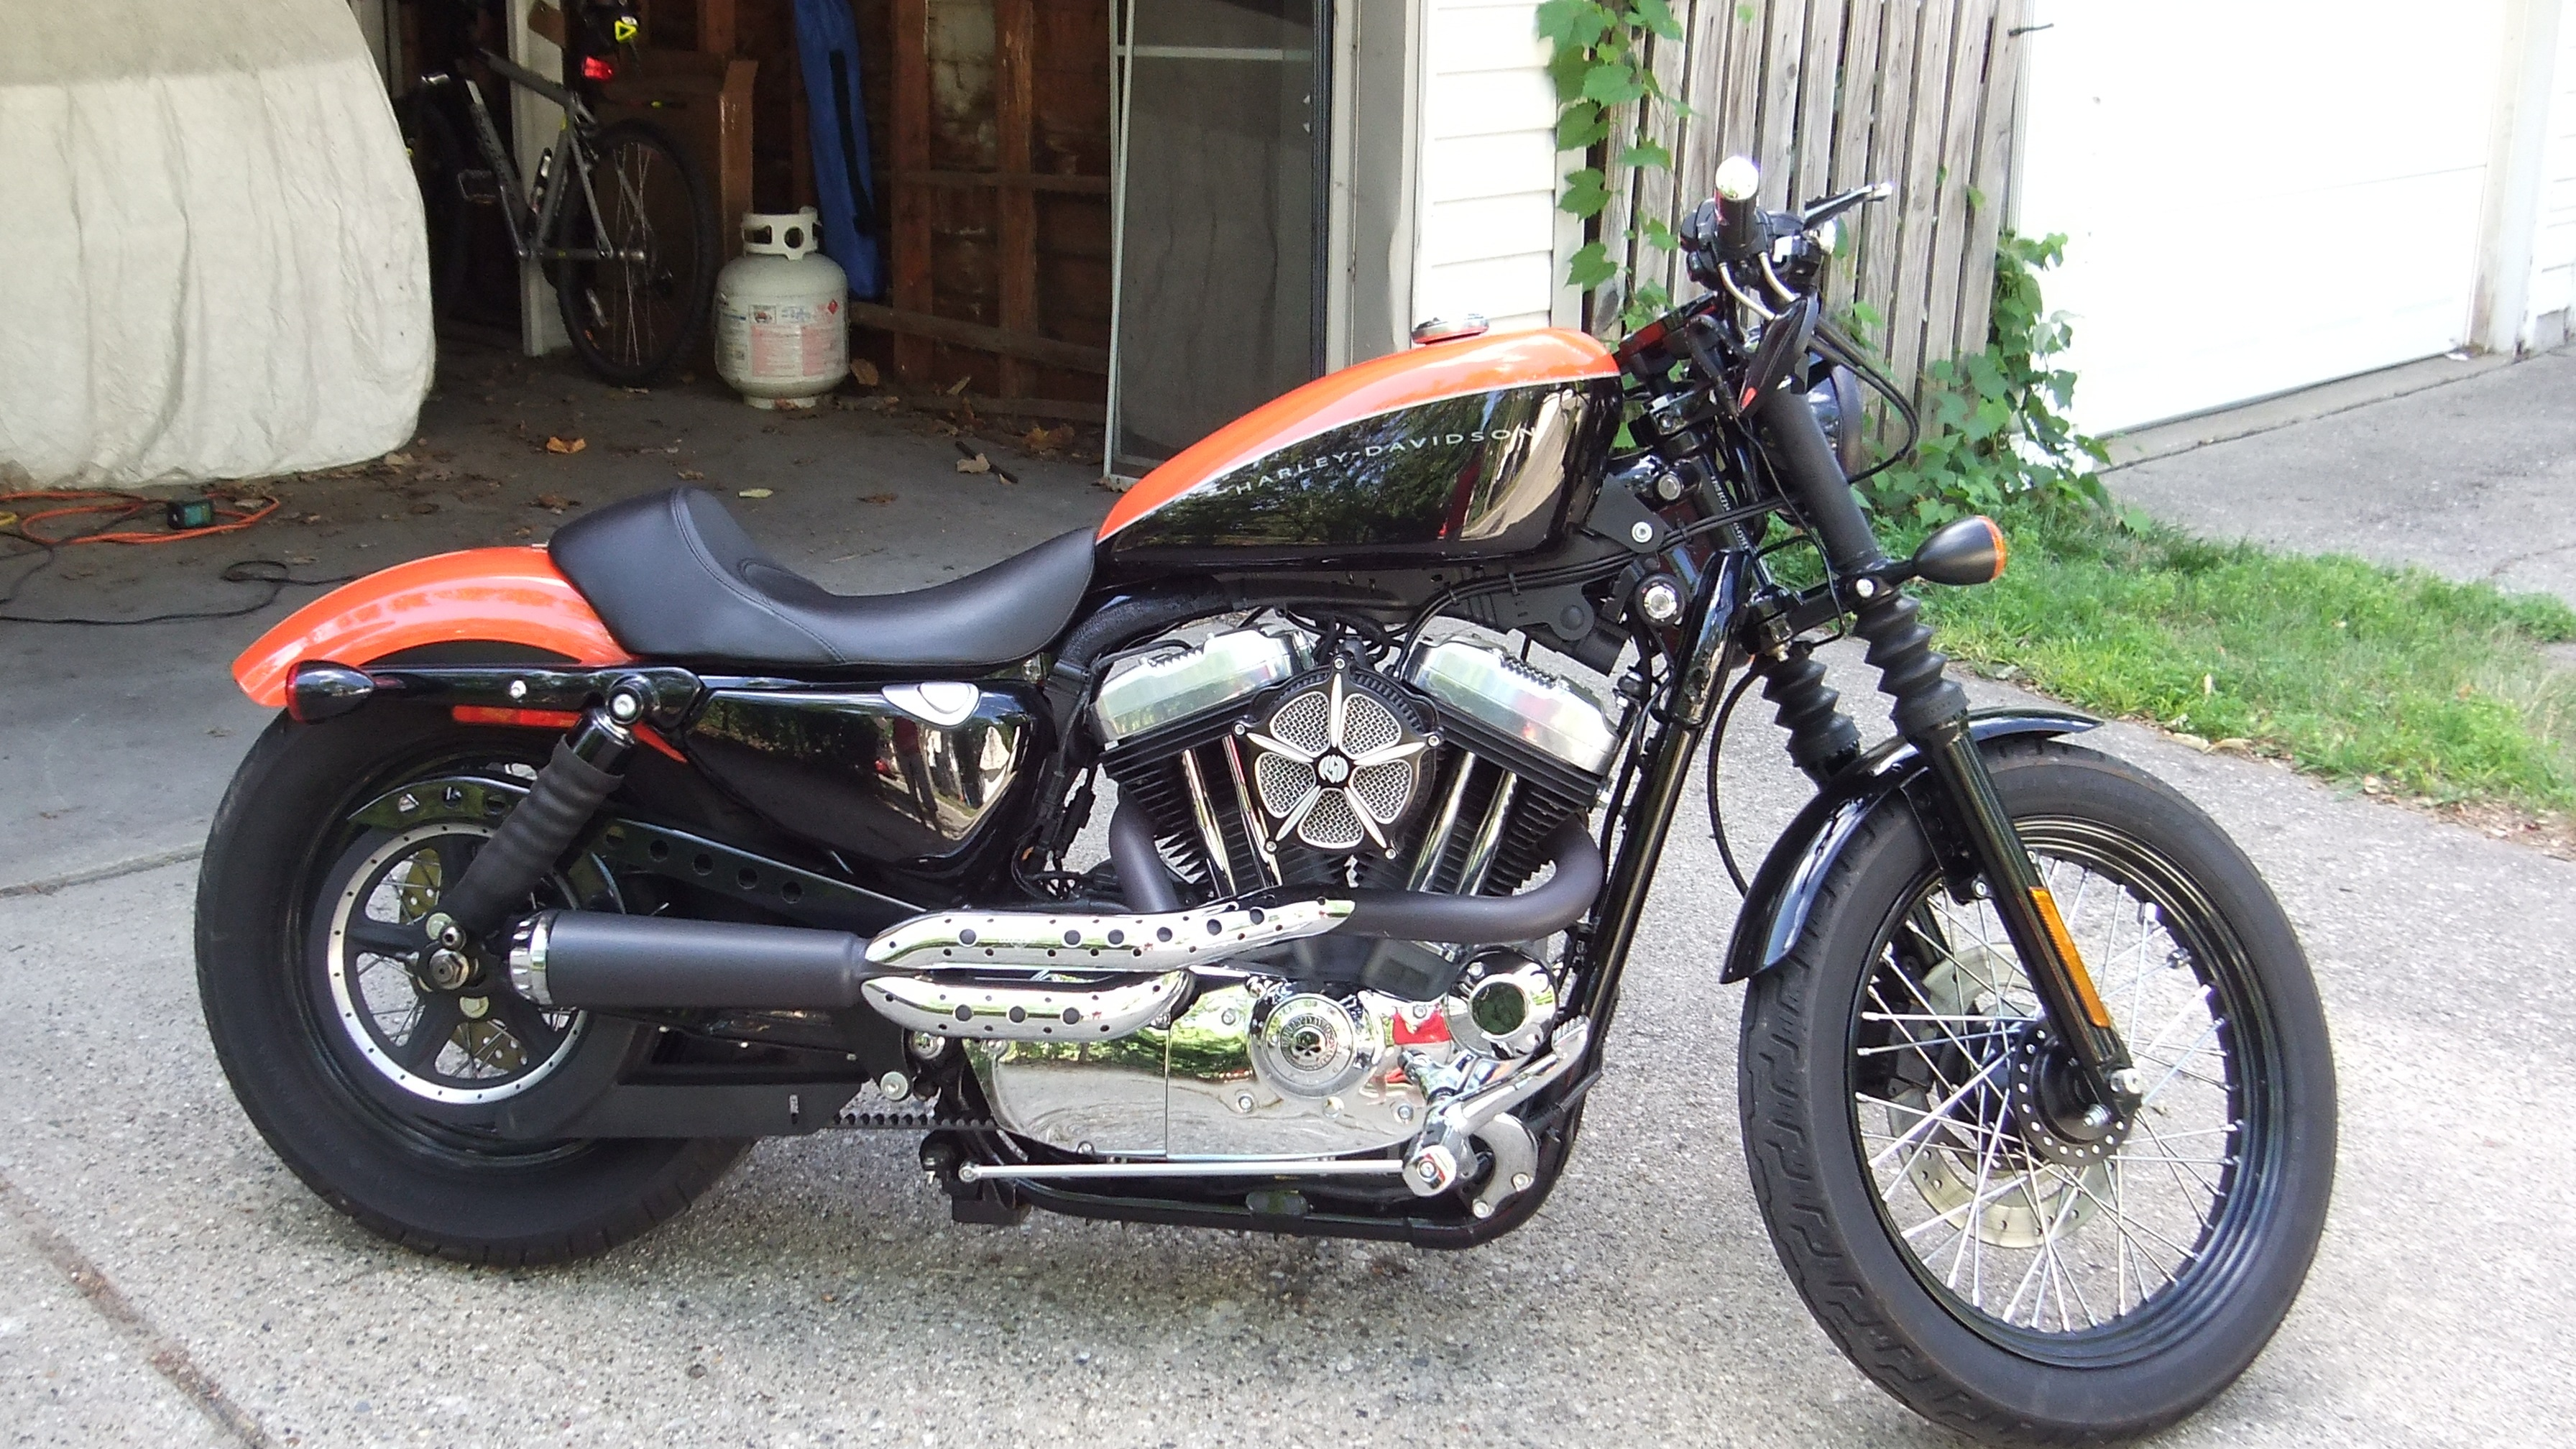 2007 Harley Davidson Nightster For Sale Blueminicooper Com